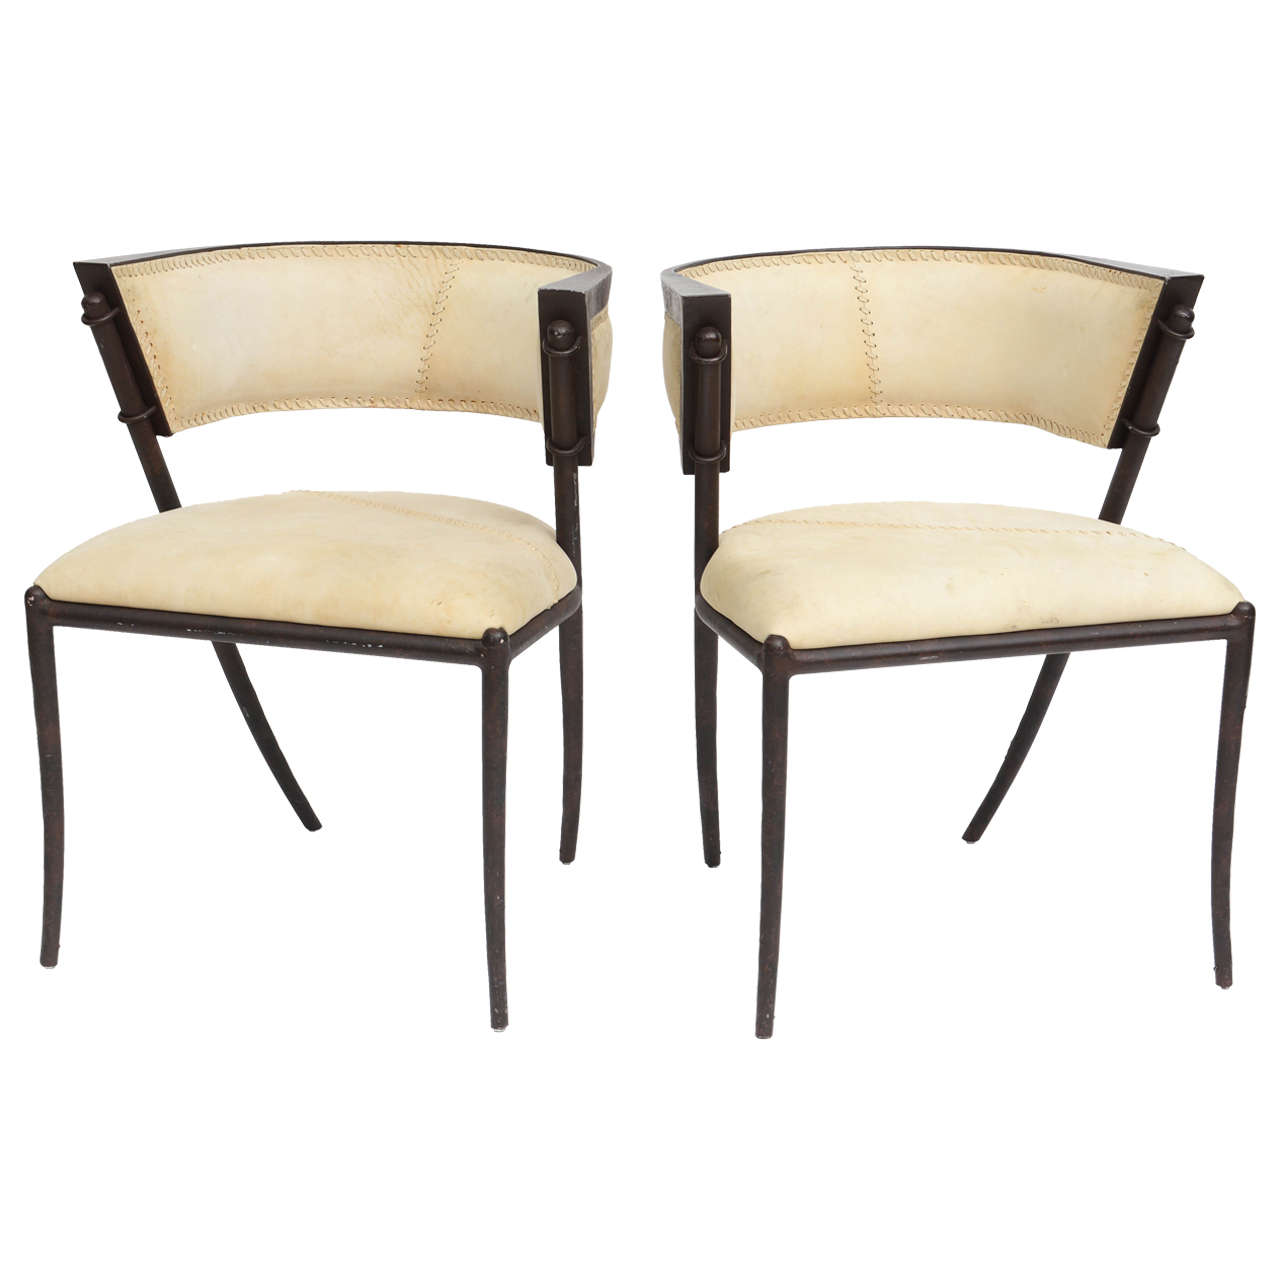 Modern Klismos Chair: Pair Of Italian Modern Klismos Form Bronze And Leather Upholstered Chairs For Sale At 1stdibs